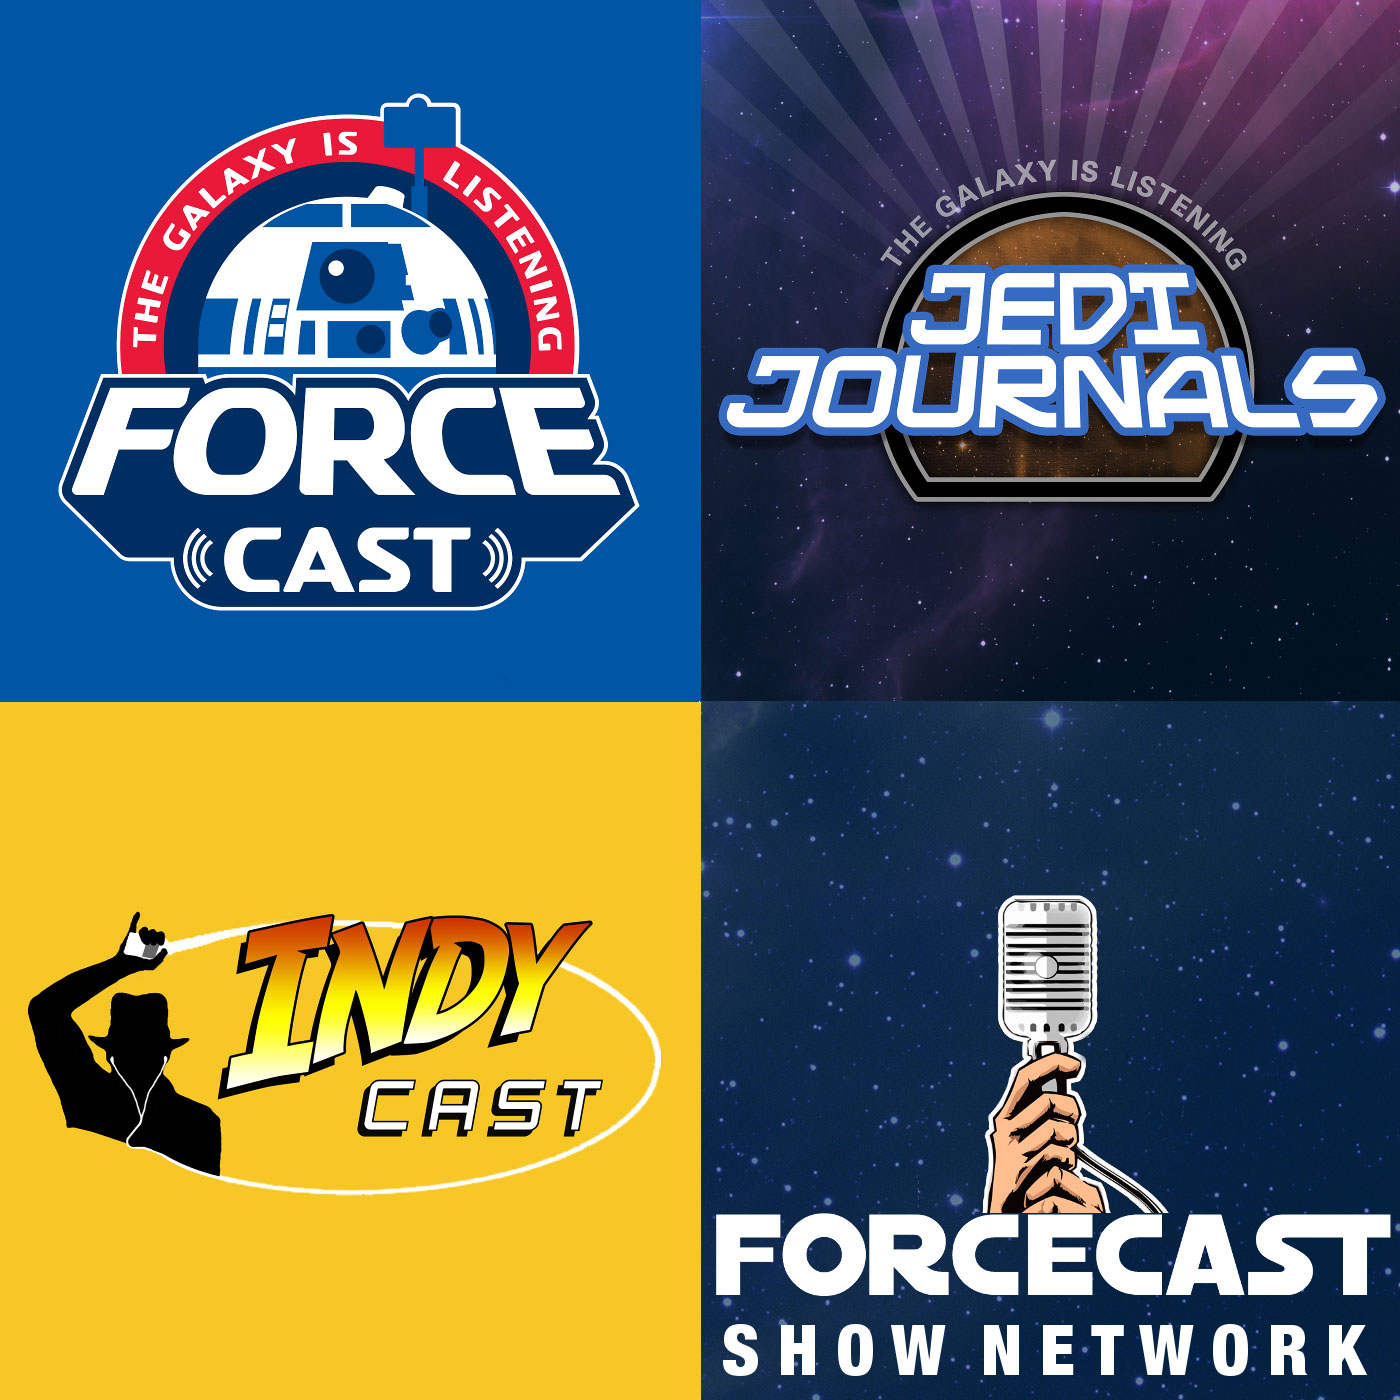 The ForceCast: Star Wars News and Commentary show art